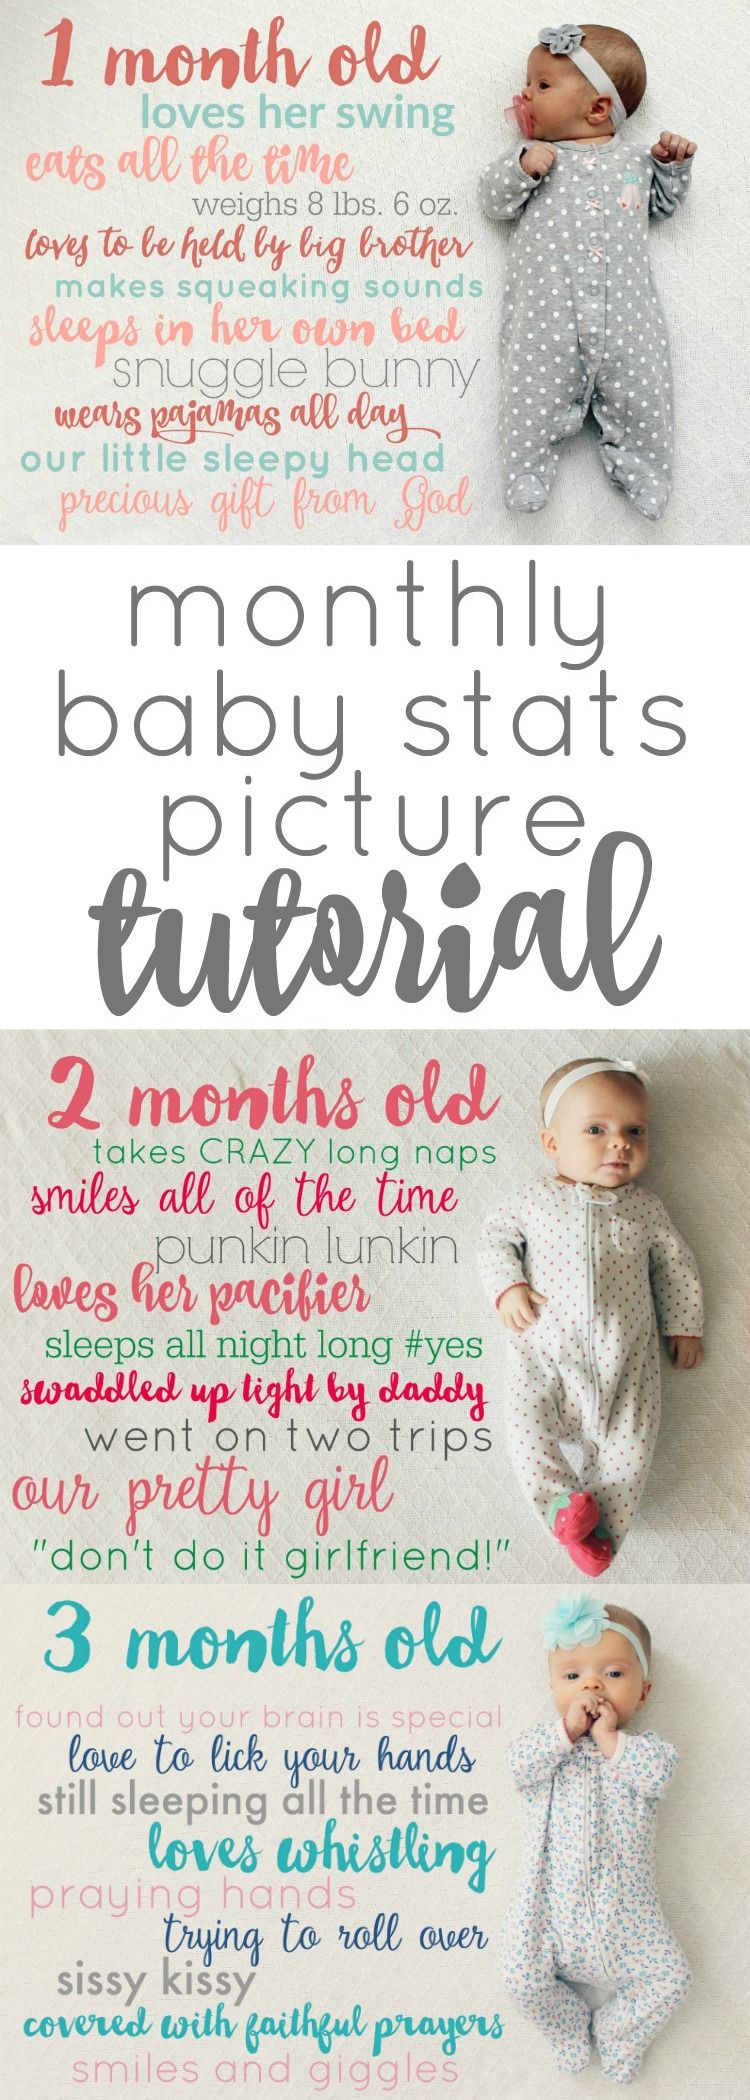 Monthly Baby Stats Picture Tutorial Quotes Pinterest Baby